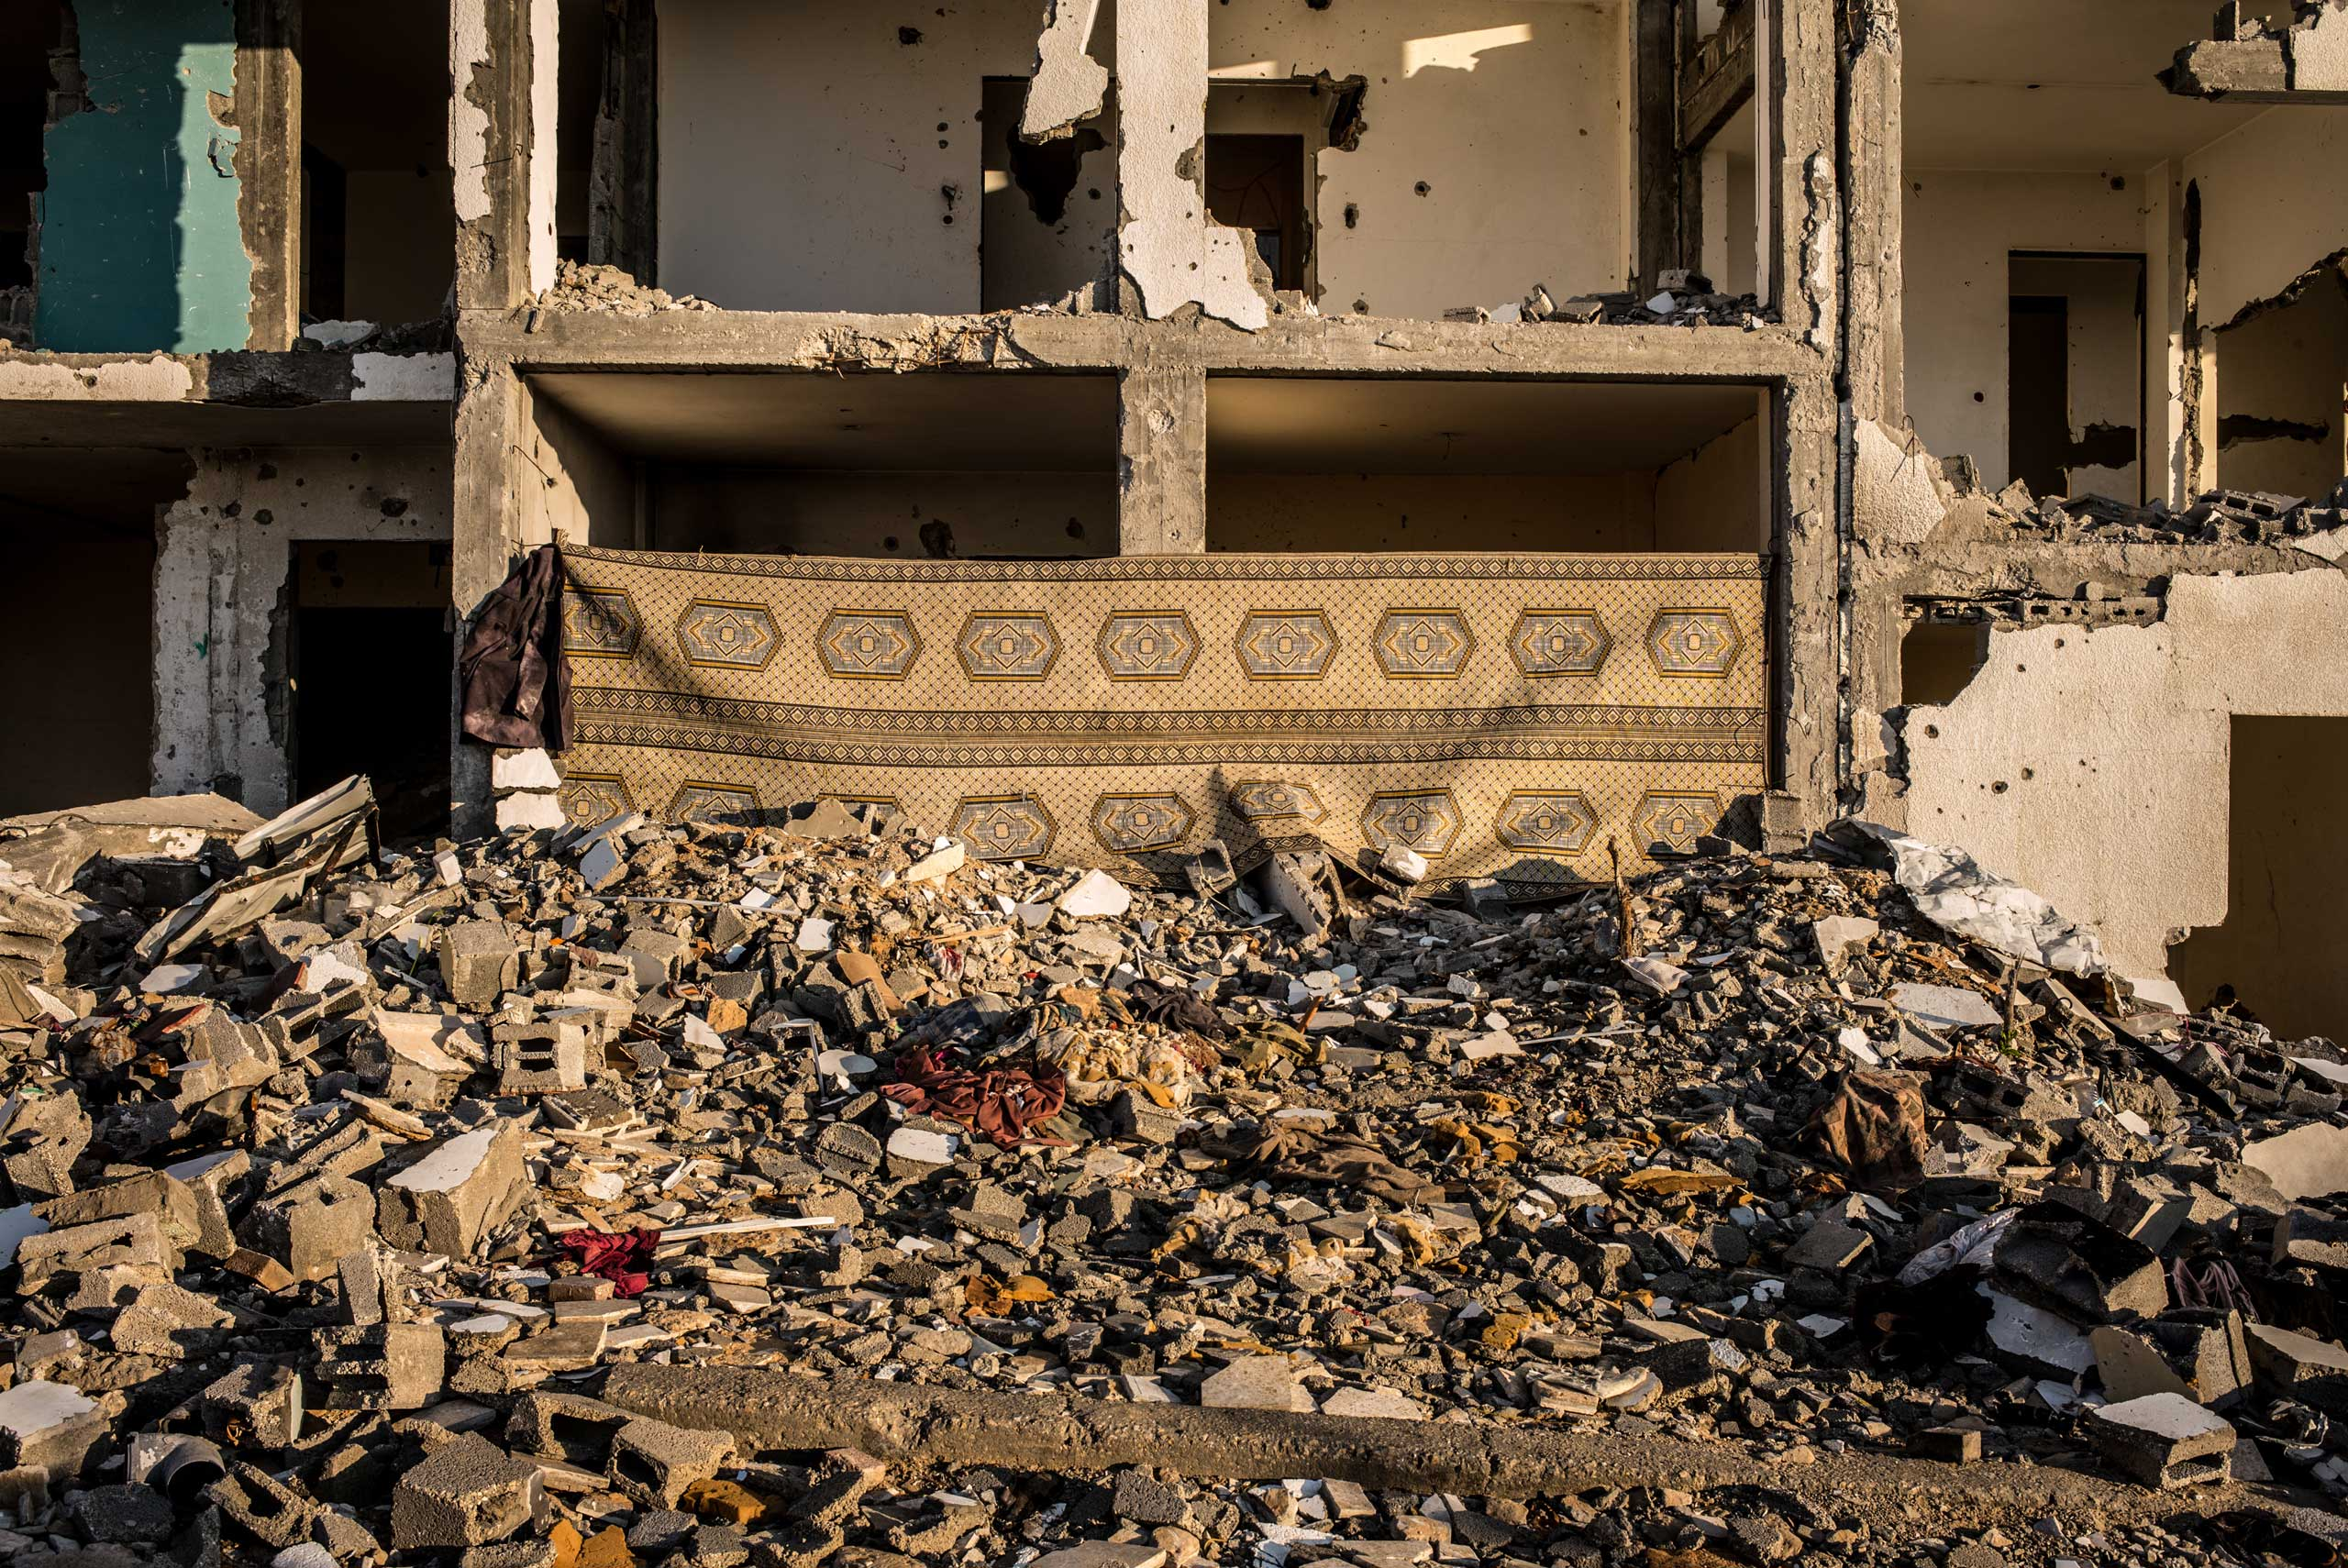 A building completely destroyed by the Israel Defense Forces' tanks in the north of the Gaza Strip, December 2014.